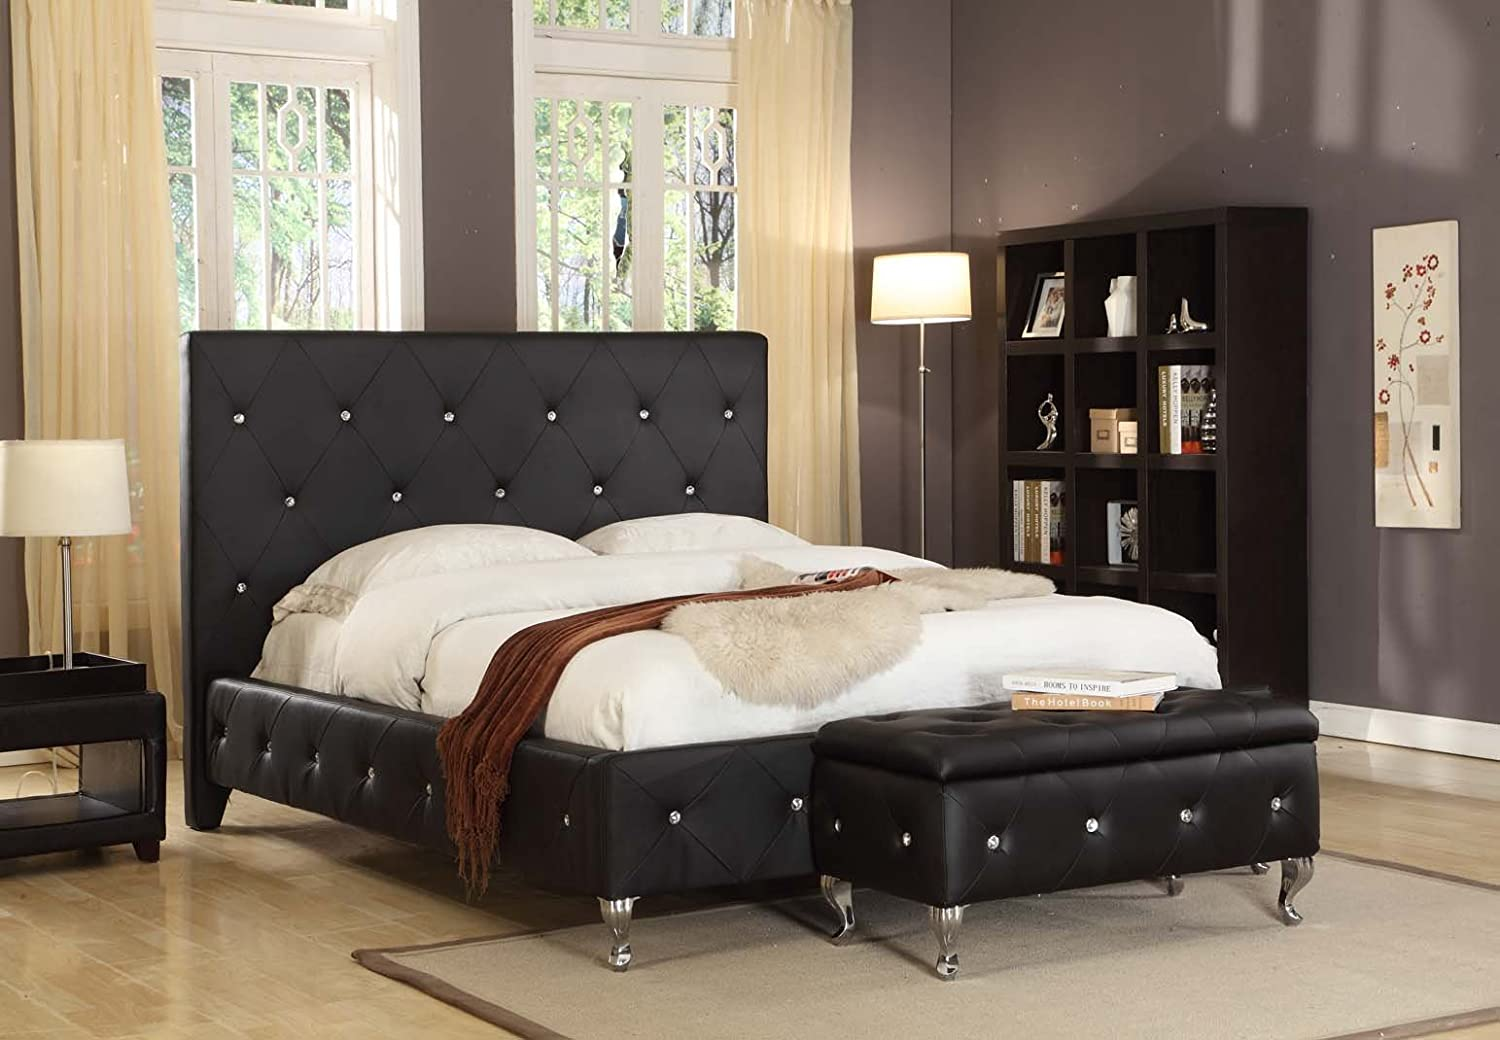 black tufted design leather look king size upholstered platform bed new. Black Bedroom Furniture Sets. Home Design Ideas